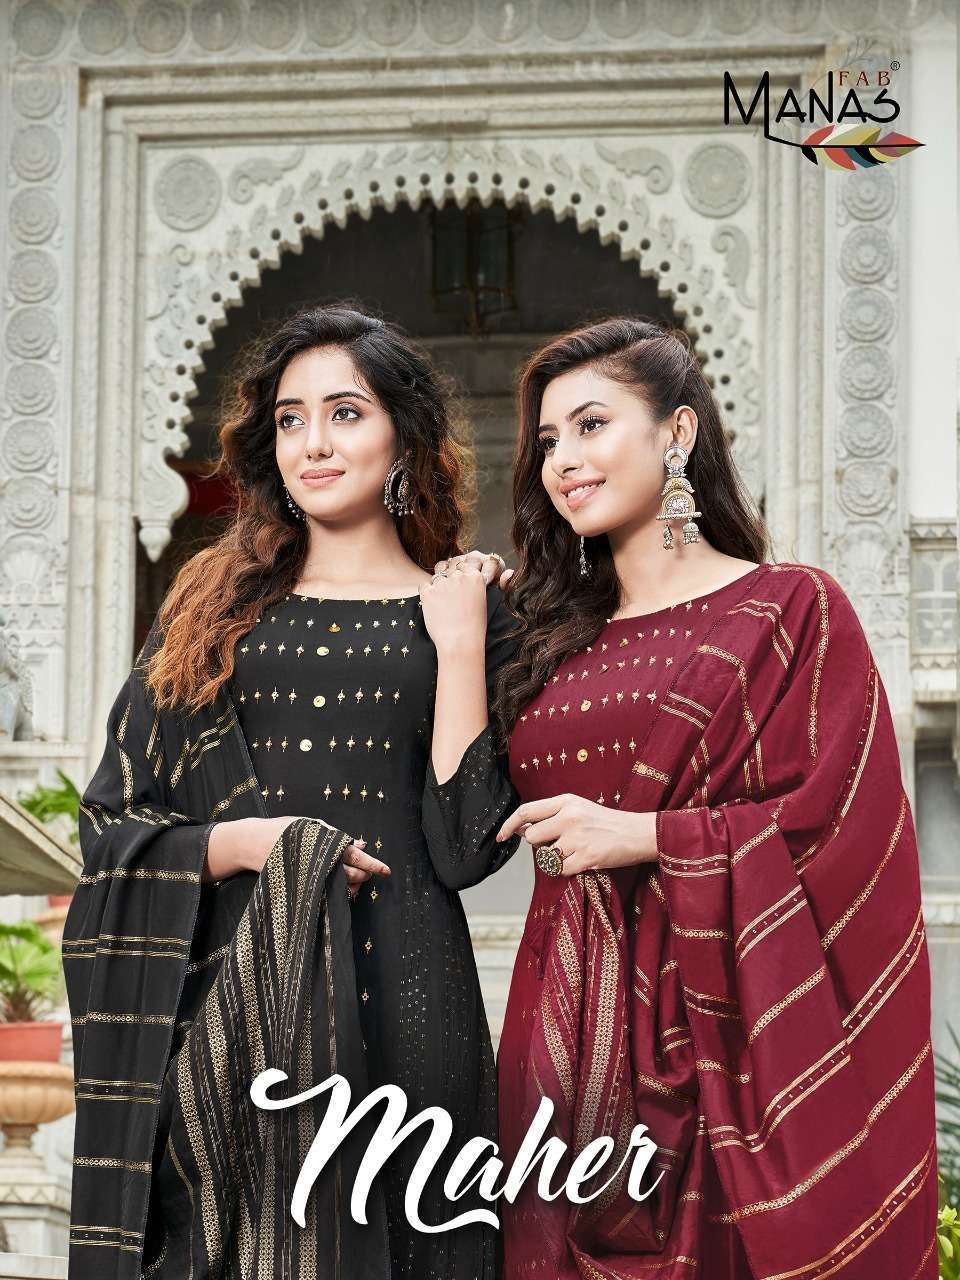 Manas Fab Maher Readymade Fancy Suits Wholesaler